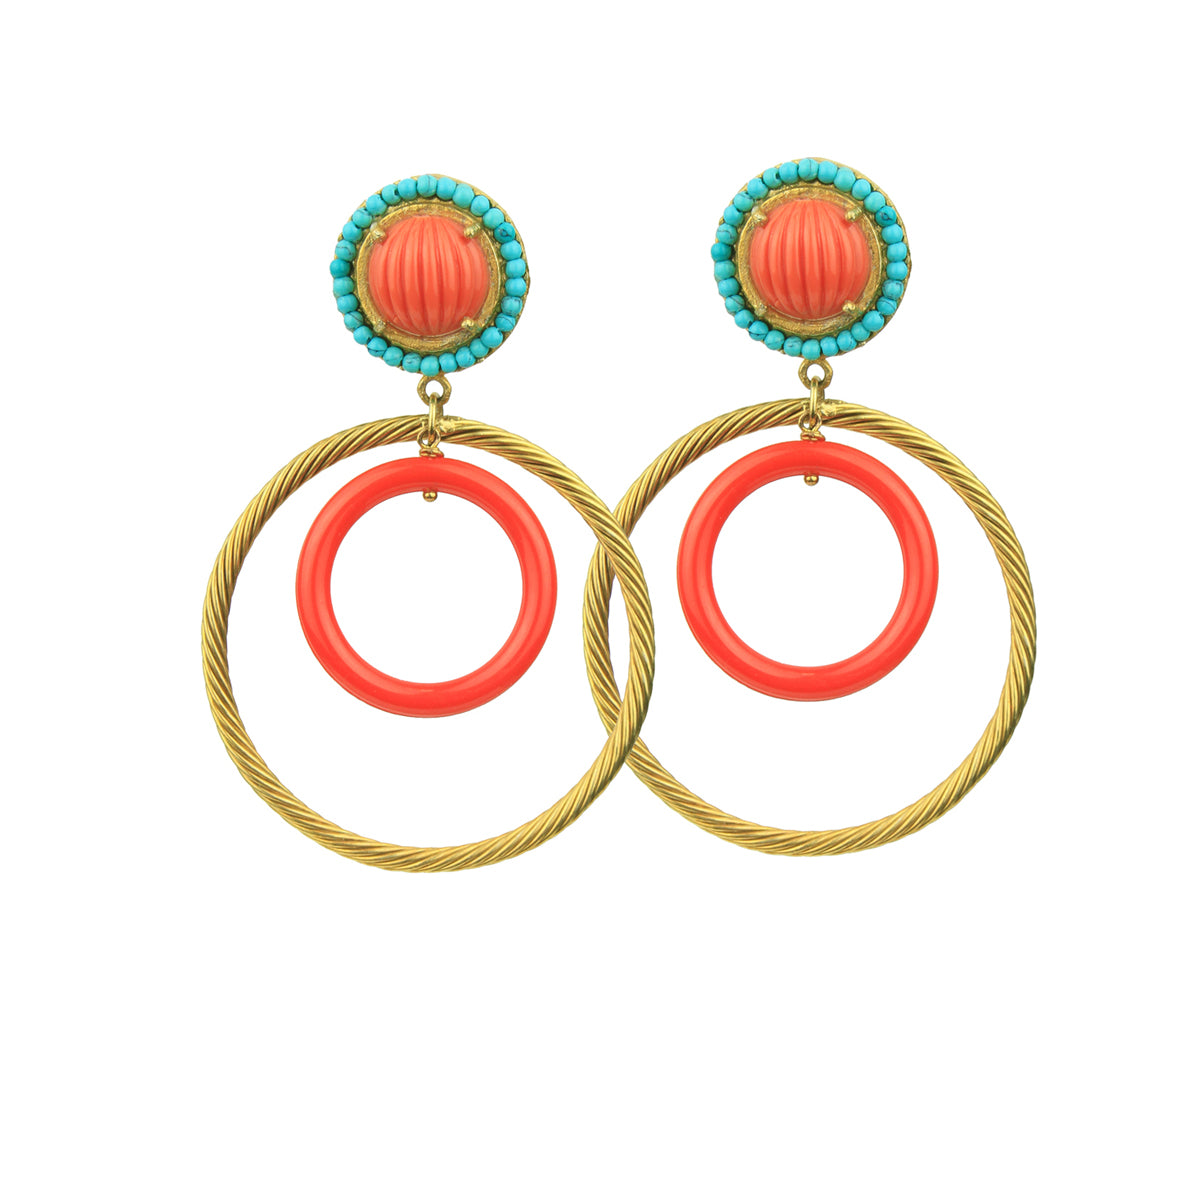 Gina Coral Rosettes and Gold plated Metal Hoops